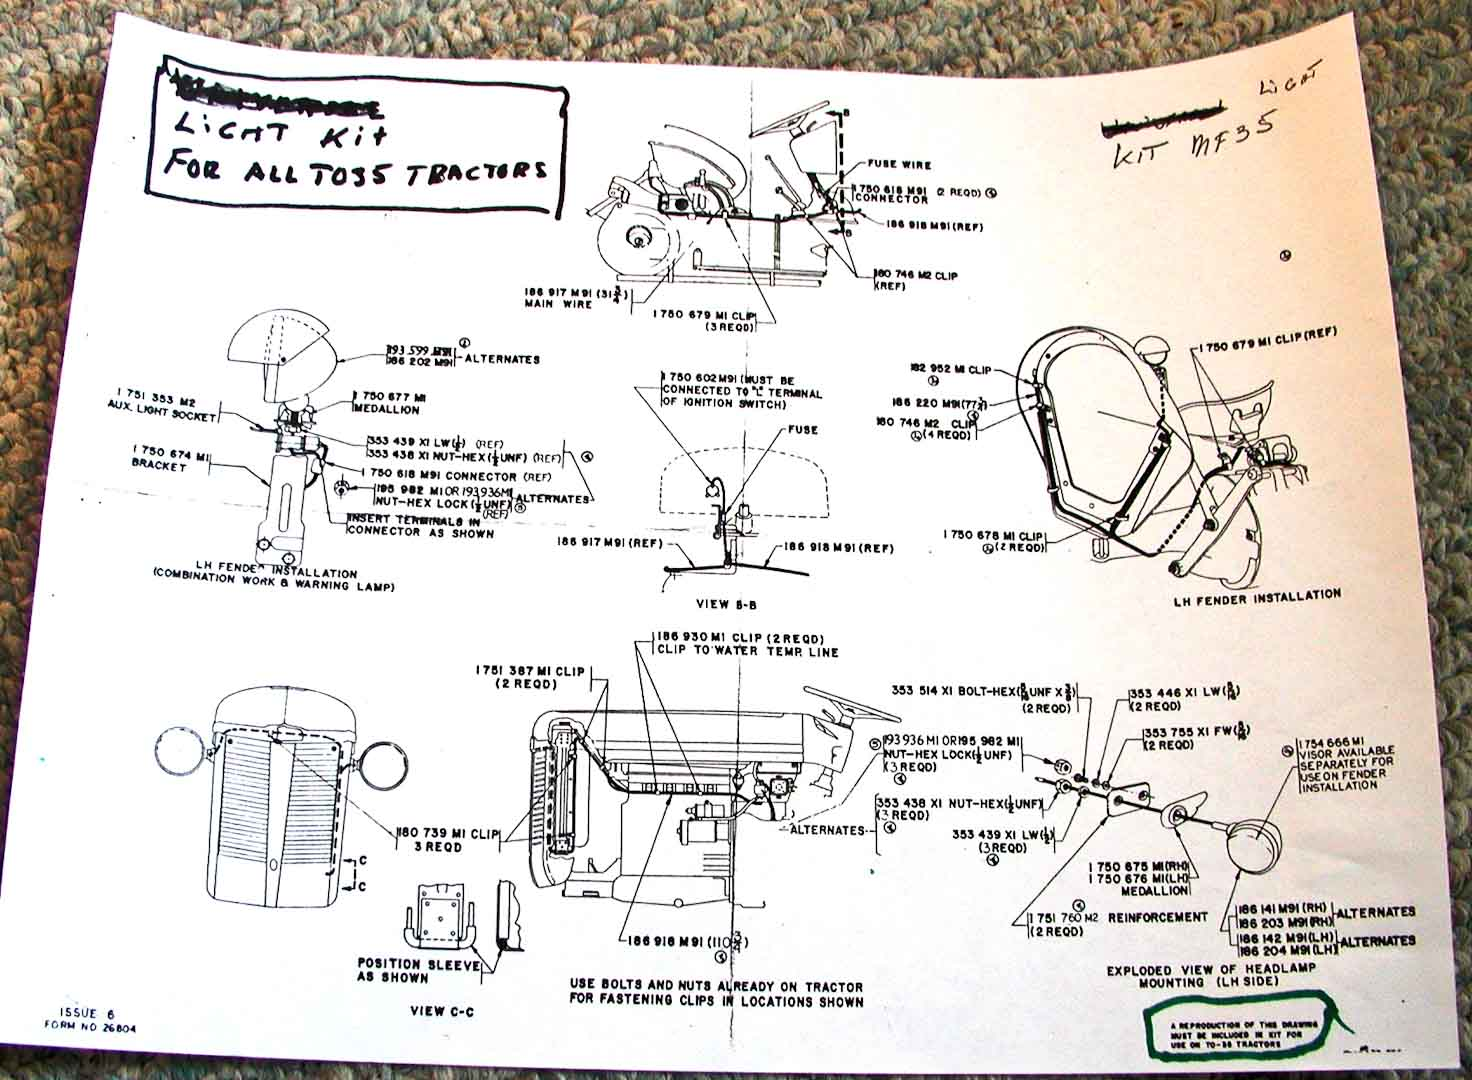 electrical and lighting diagrams \u2013 ferguson enthusiasts of north america Massey Tractors 540